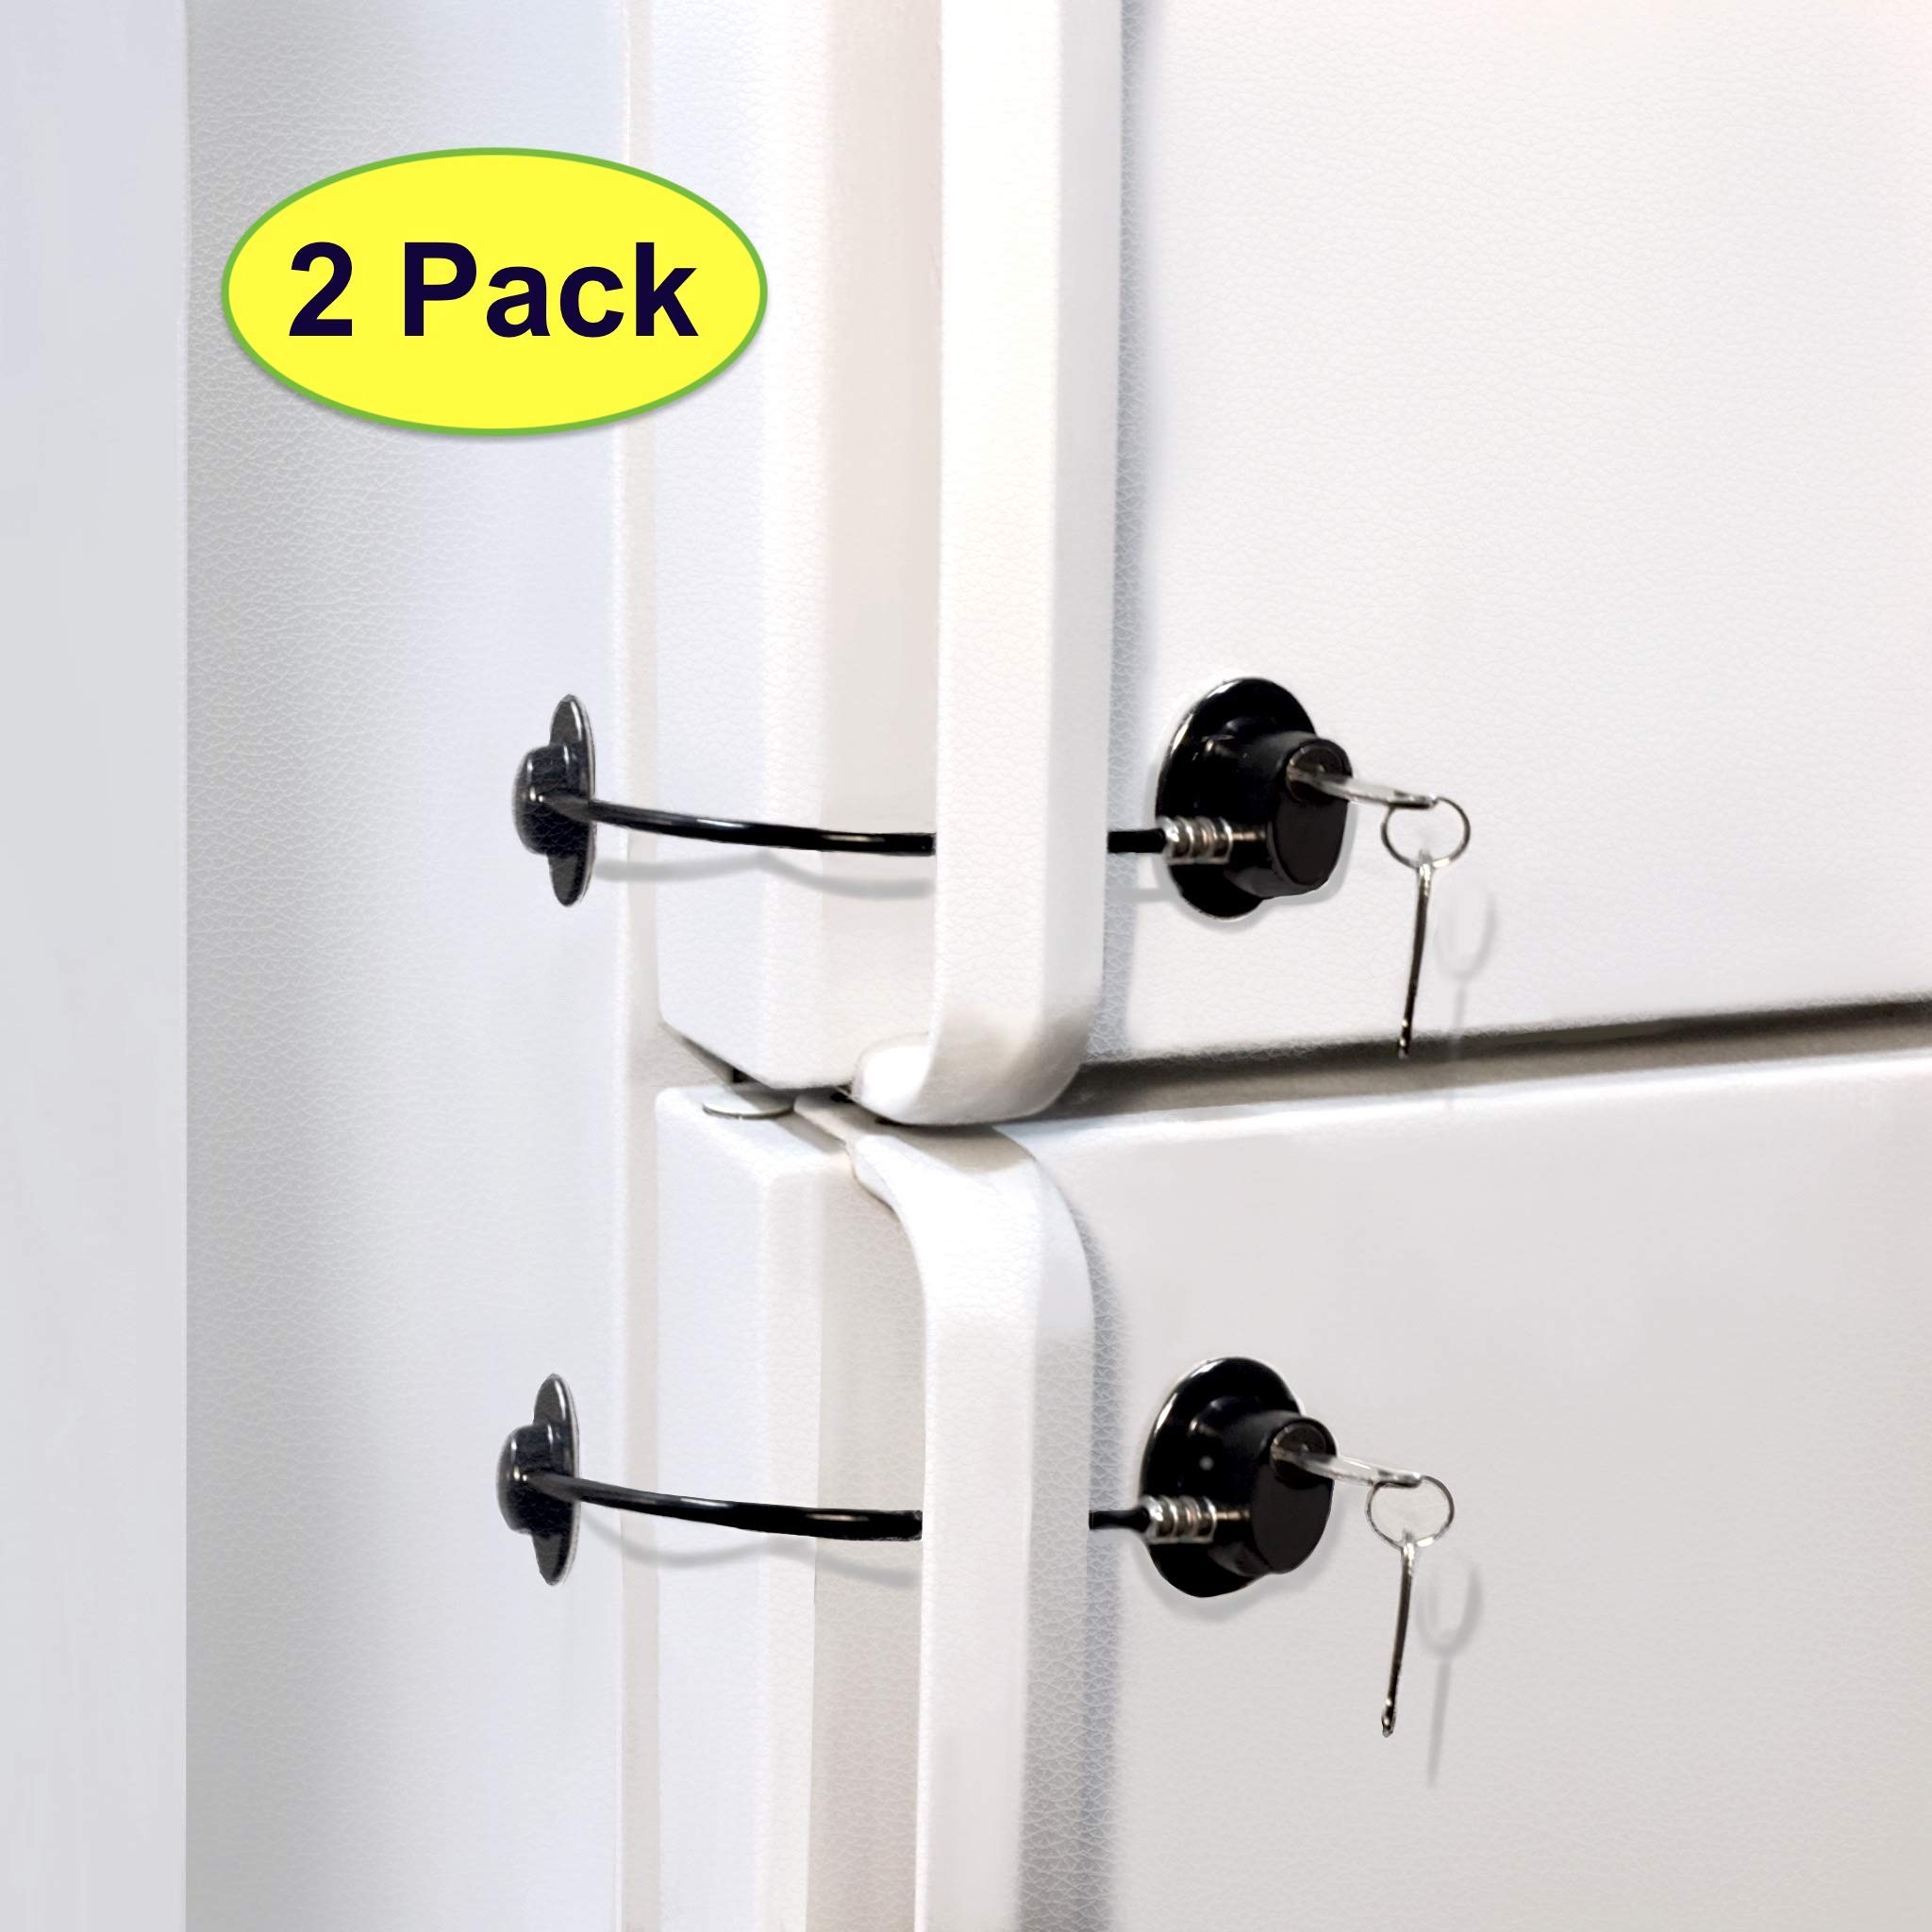 Fridge Lock, Refrigerator Lock, mini fridge lock, File Cabinet Lock, Drawer Lock, Lock for Cabinet, Child Safety lock Refrigerator Door Lock, fridge door lock with key by ToolsGold (2 Pack)